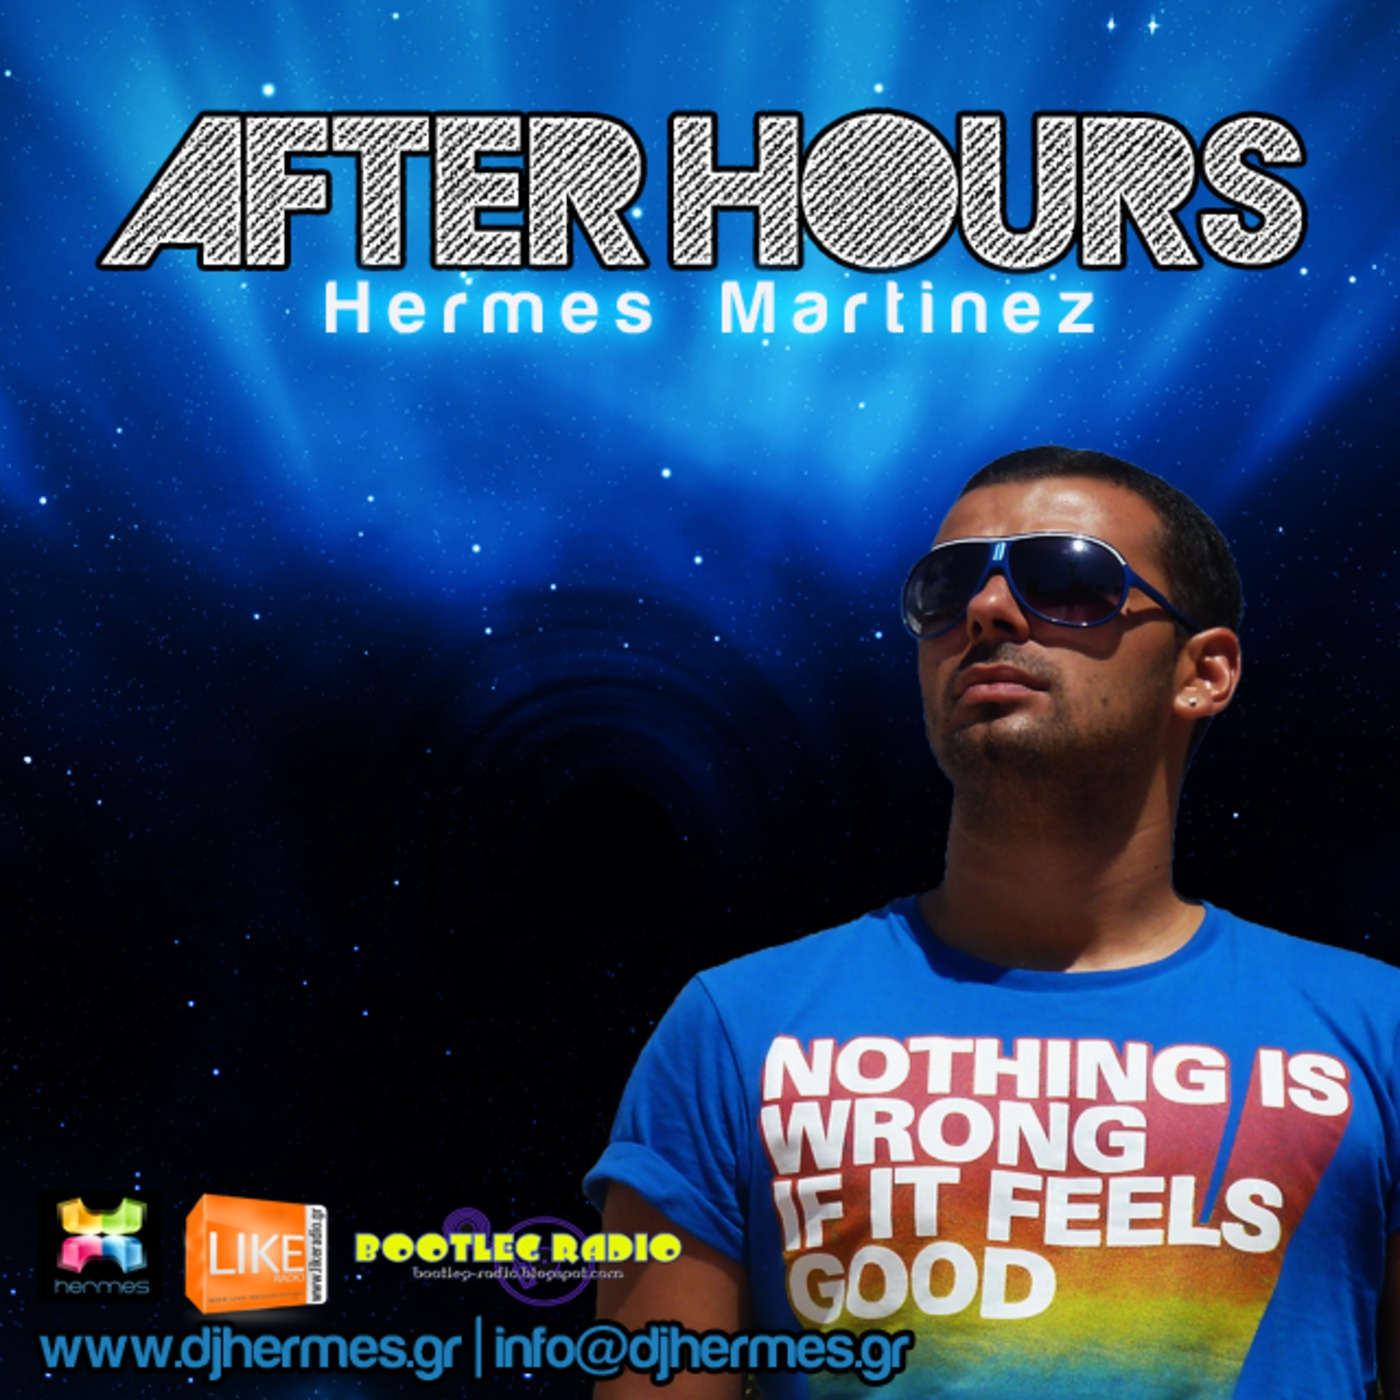 After Hours Podcasts